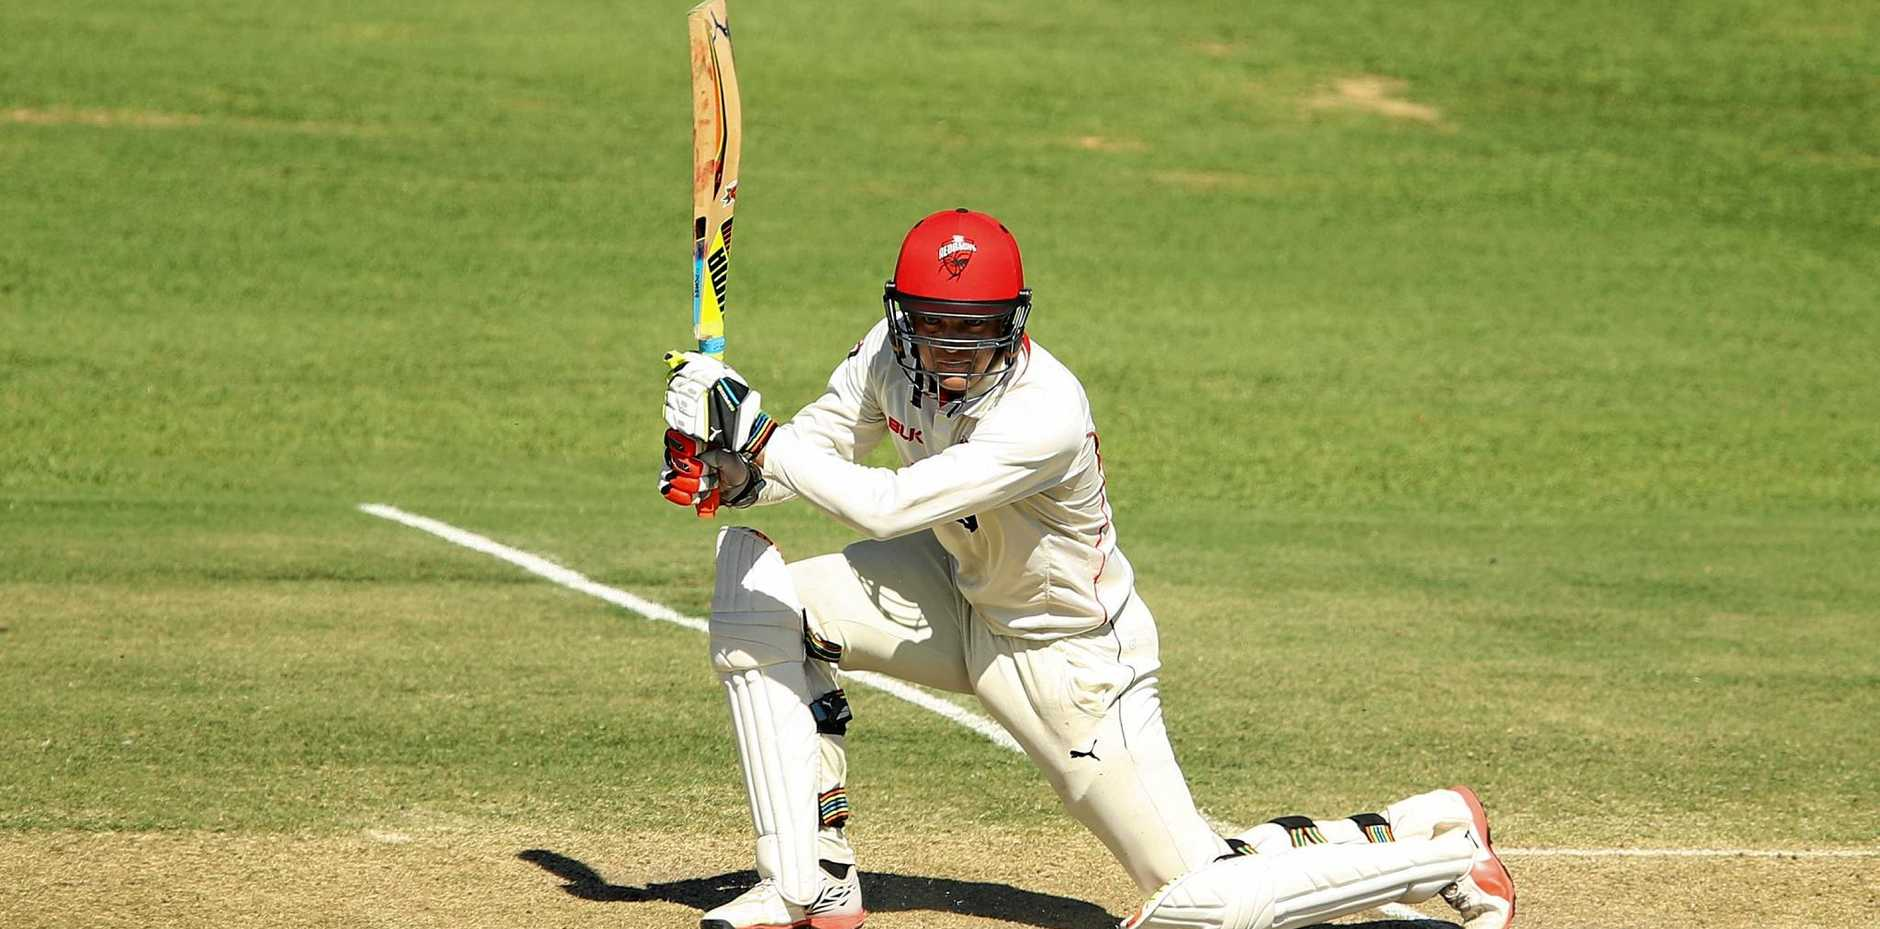 Alex Carey of the Redbacks plays a cover drive during the Sheffield Shield final between Victoria and South Australia in Alice Springs.